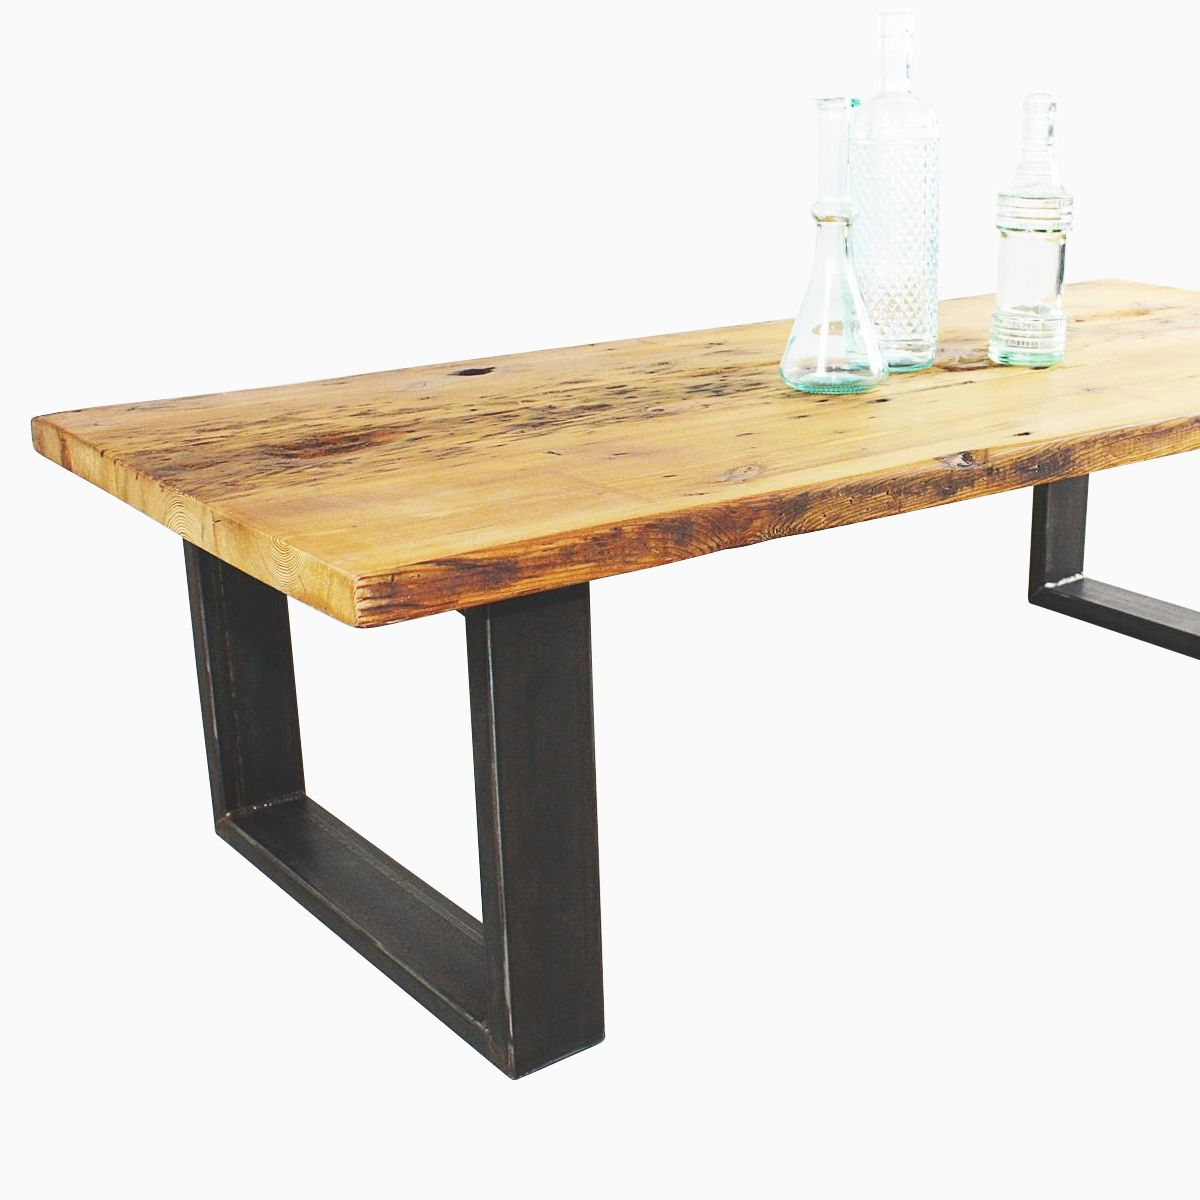 Buy a hand made reclaimed pine coffee table made to order from what we make Coffee table buy